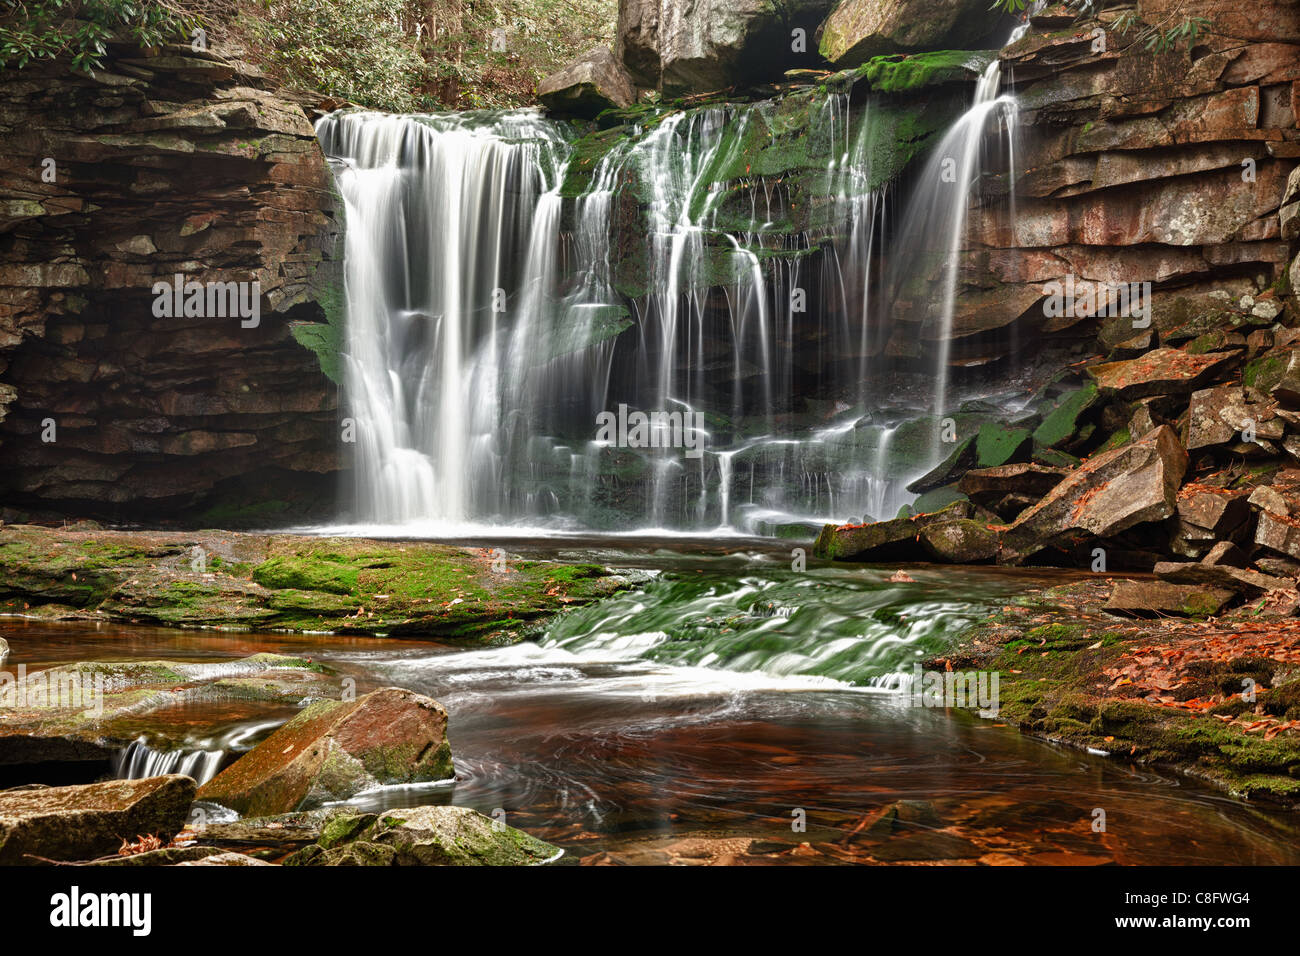 Elakala falls in Blackwater State park in West Virginia, USA - Stock Image